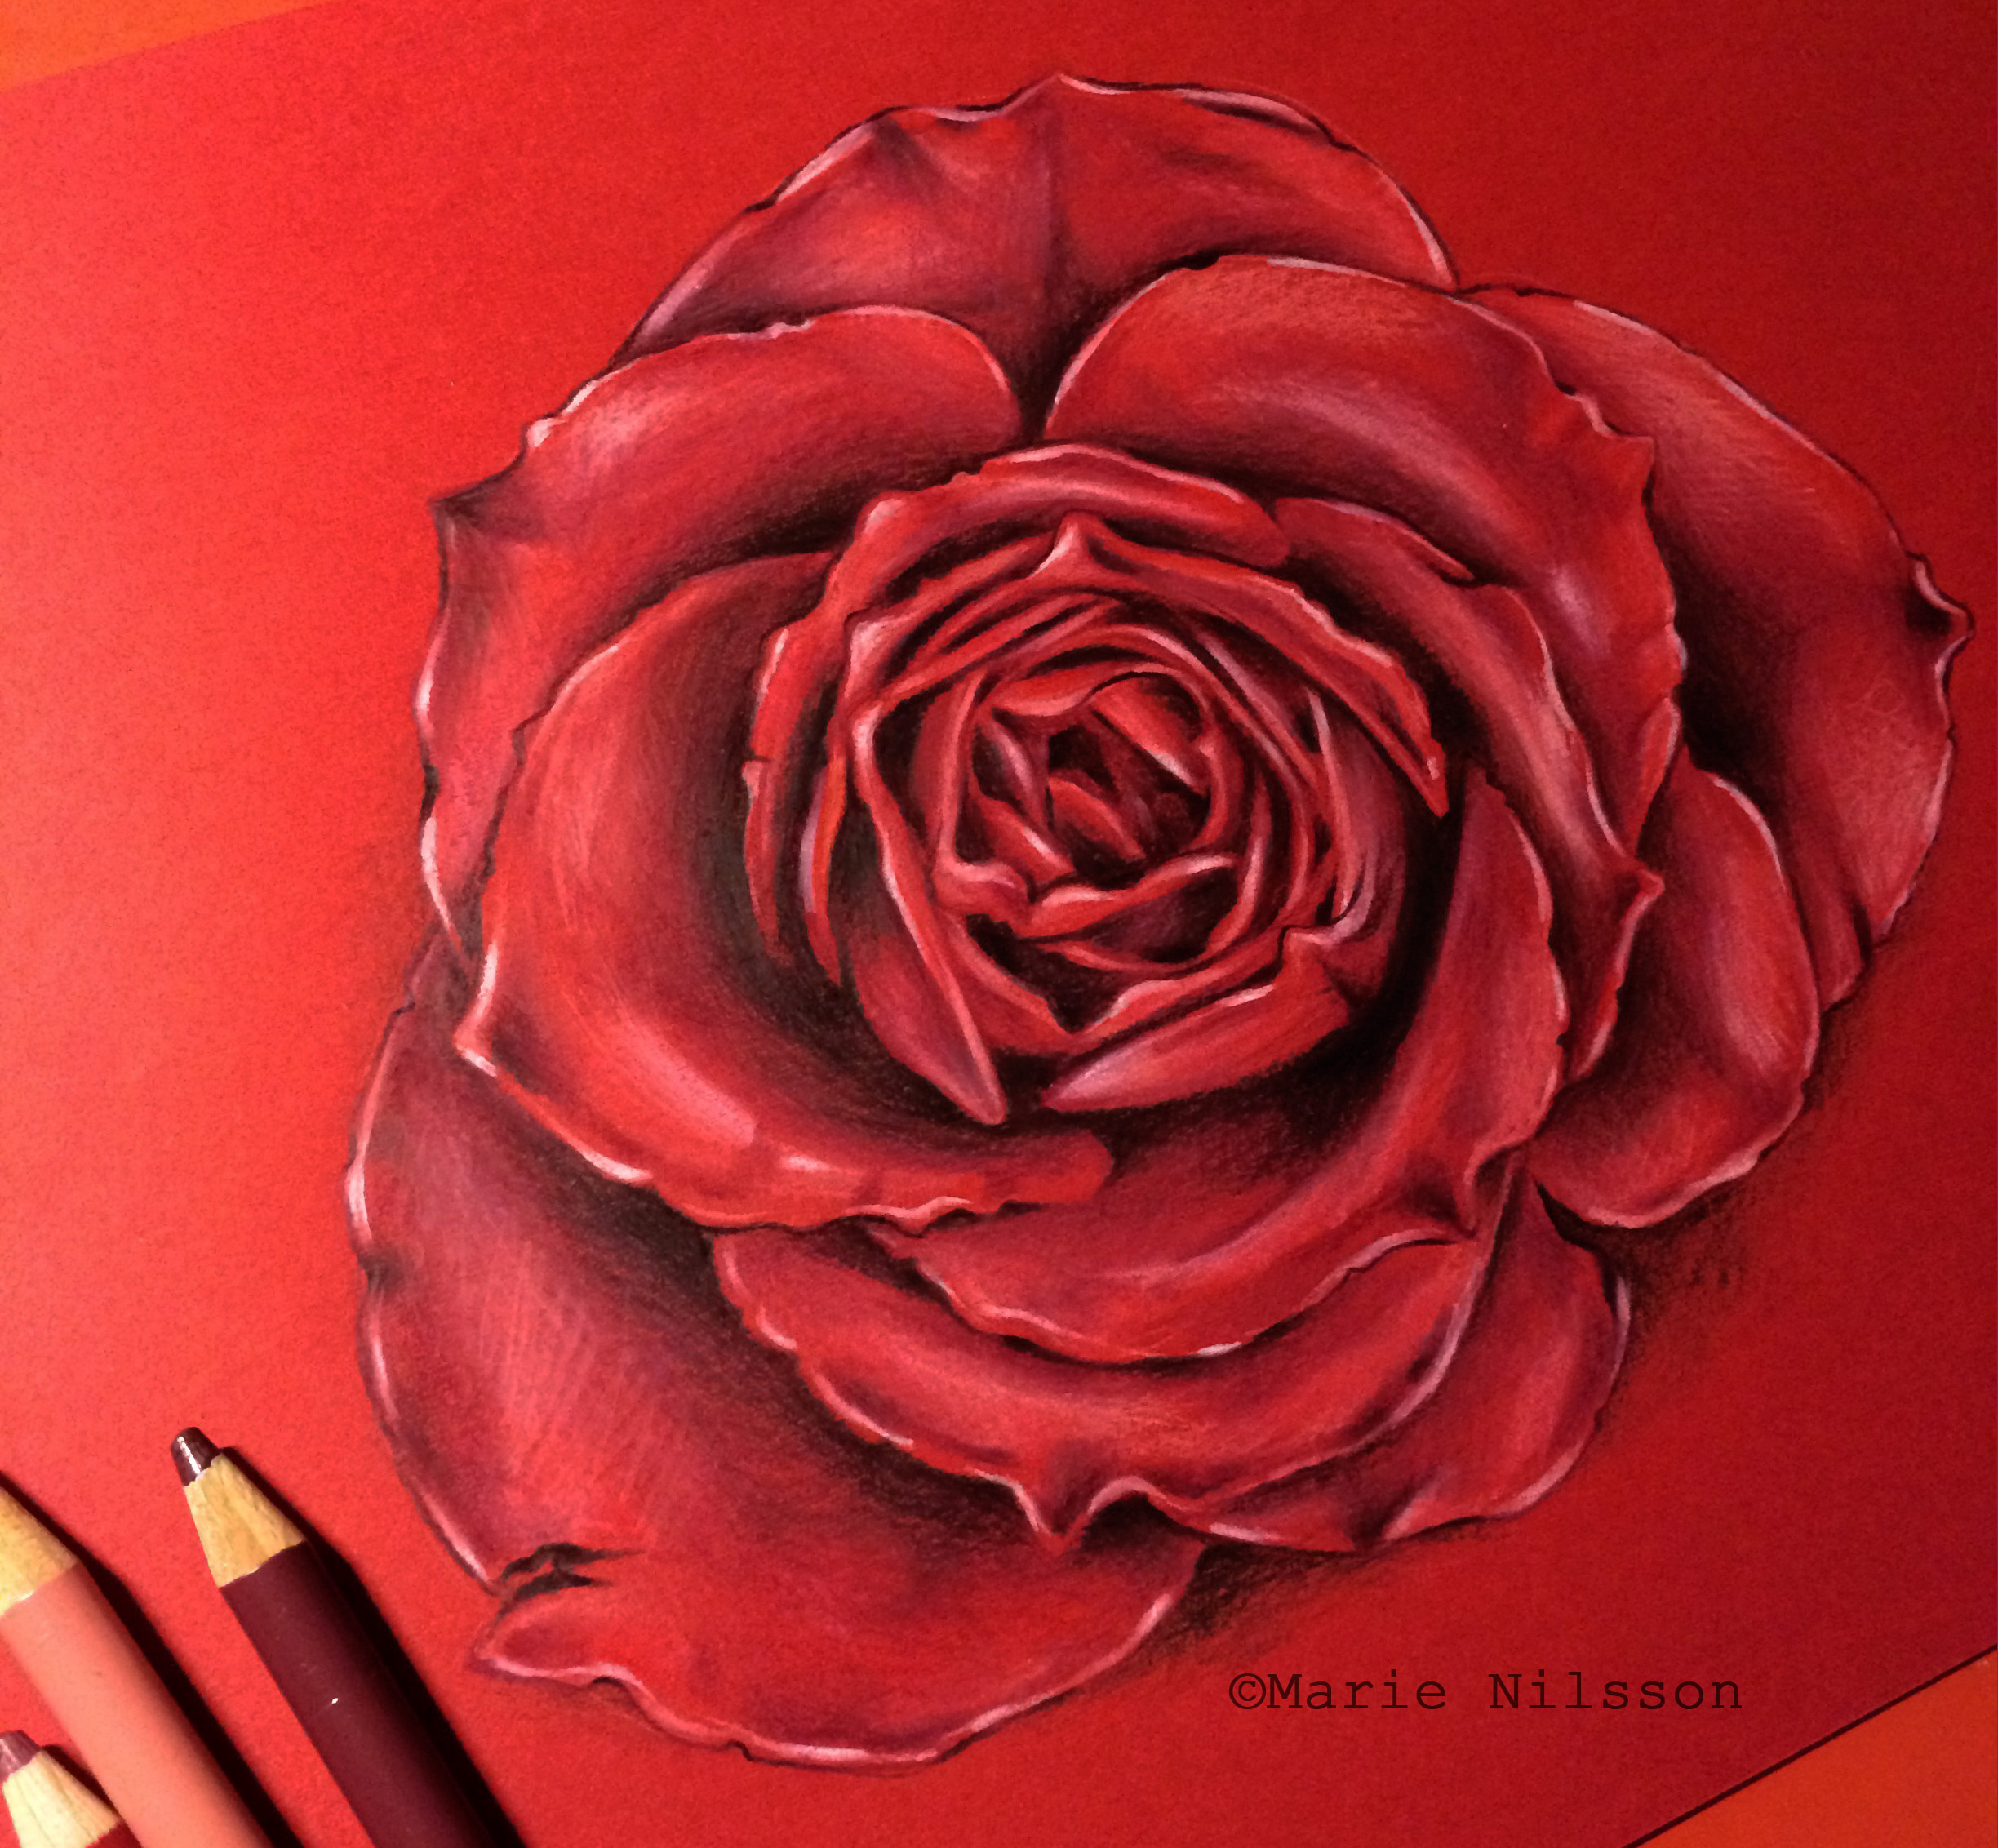 knumathise: Realistic Red Rose Drawing Images